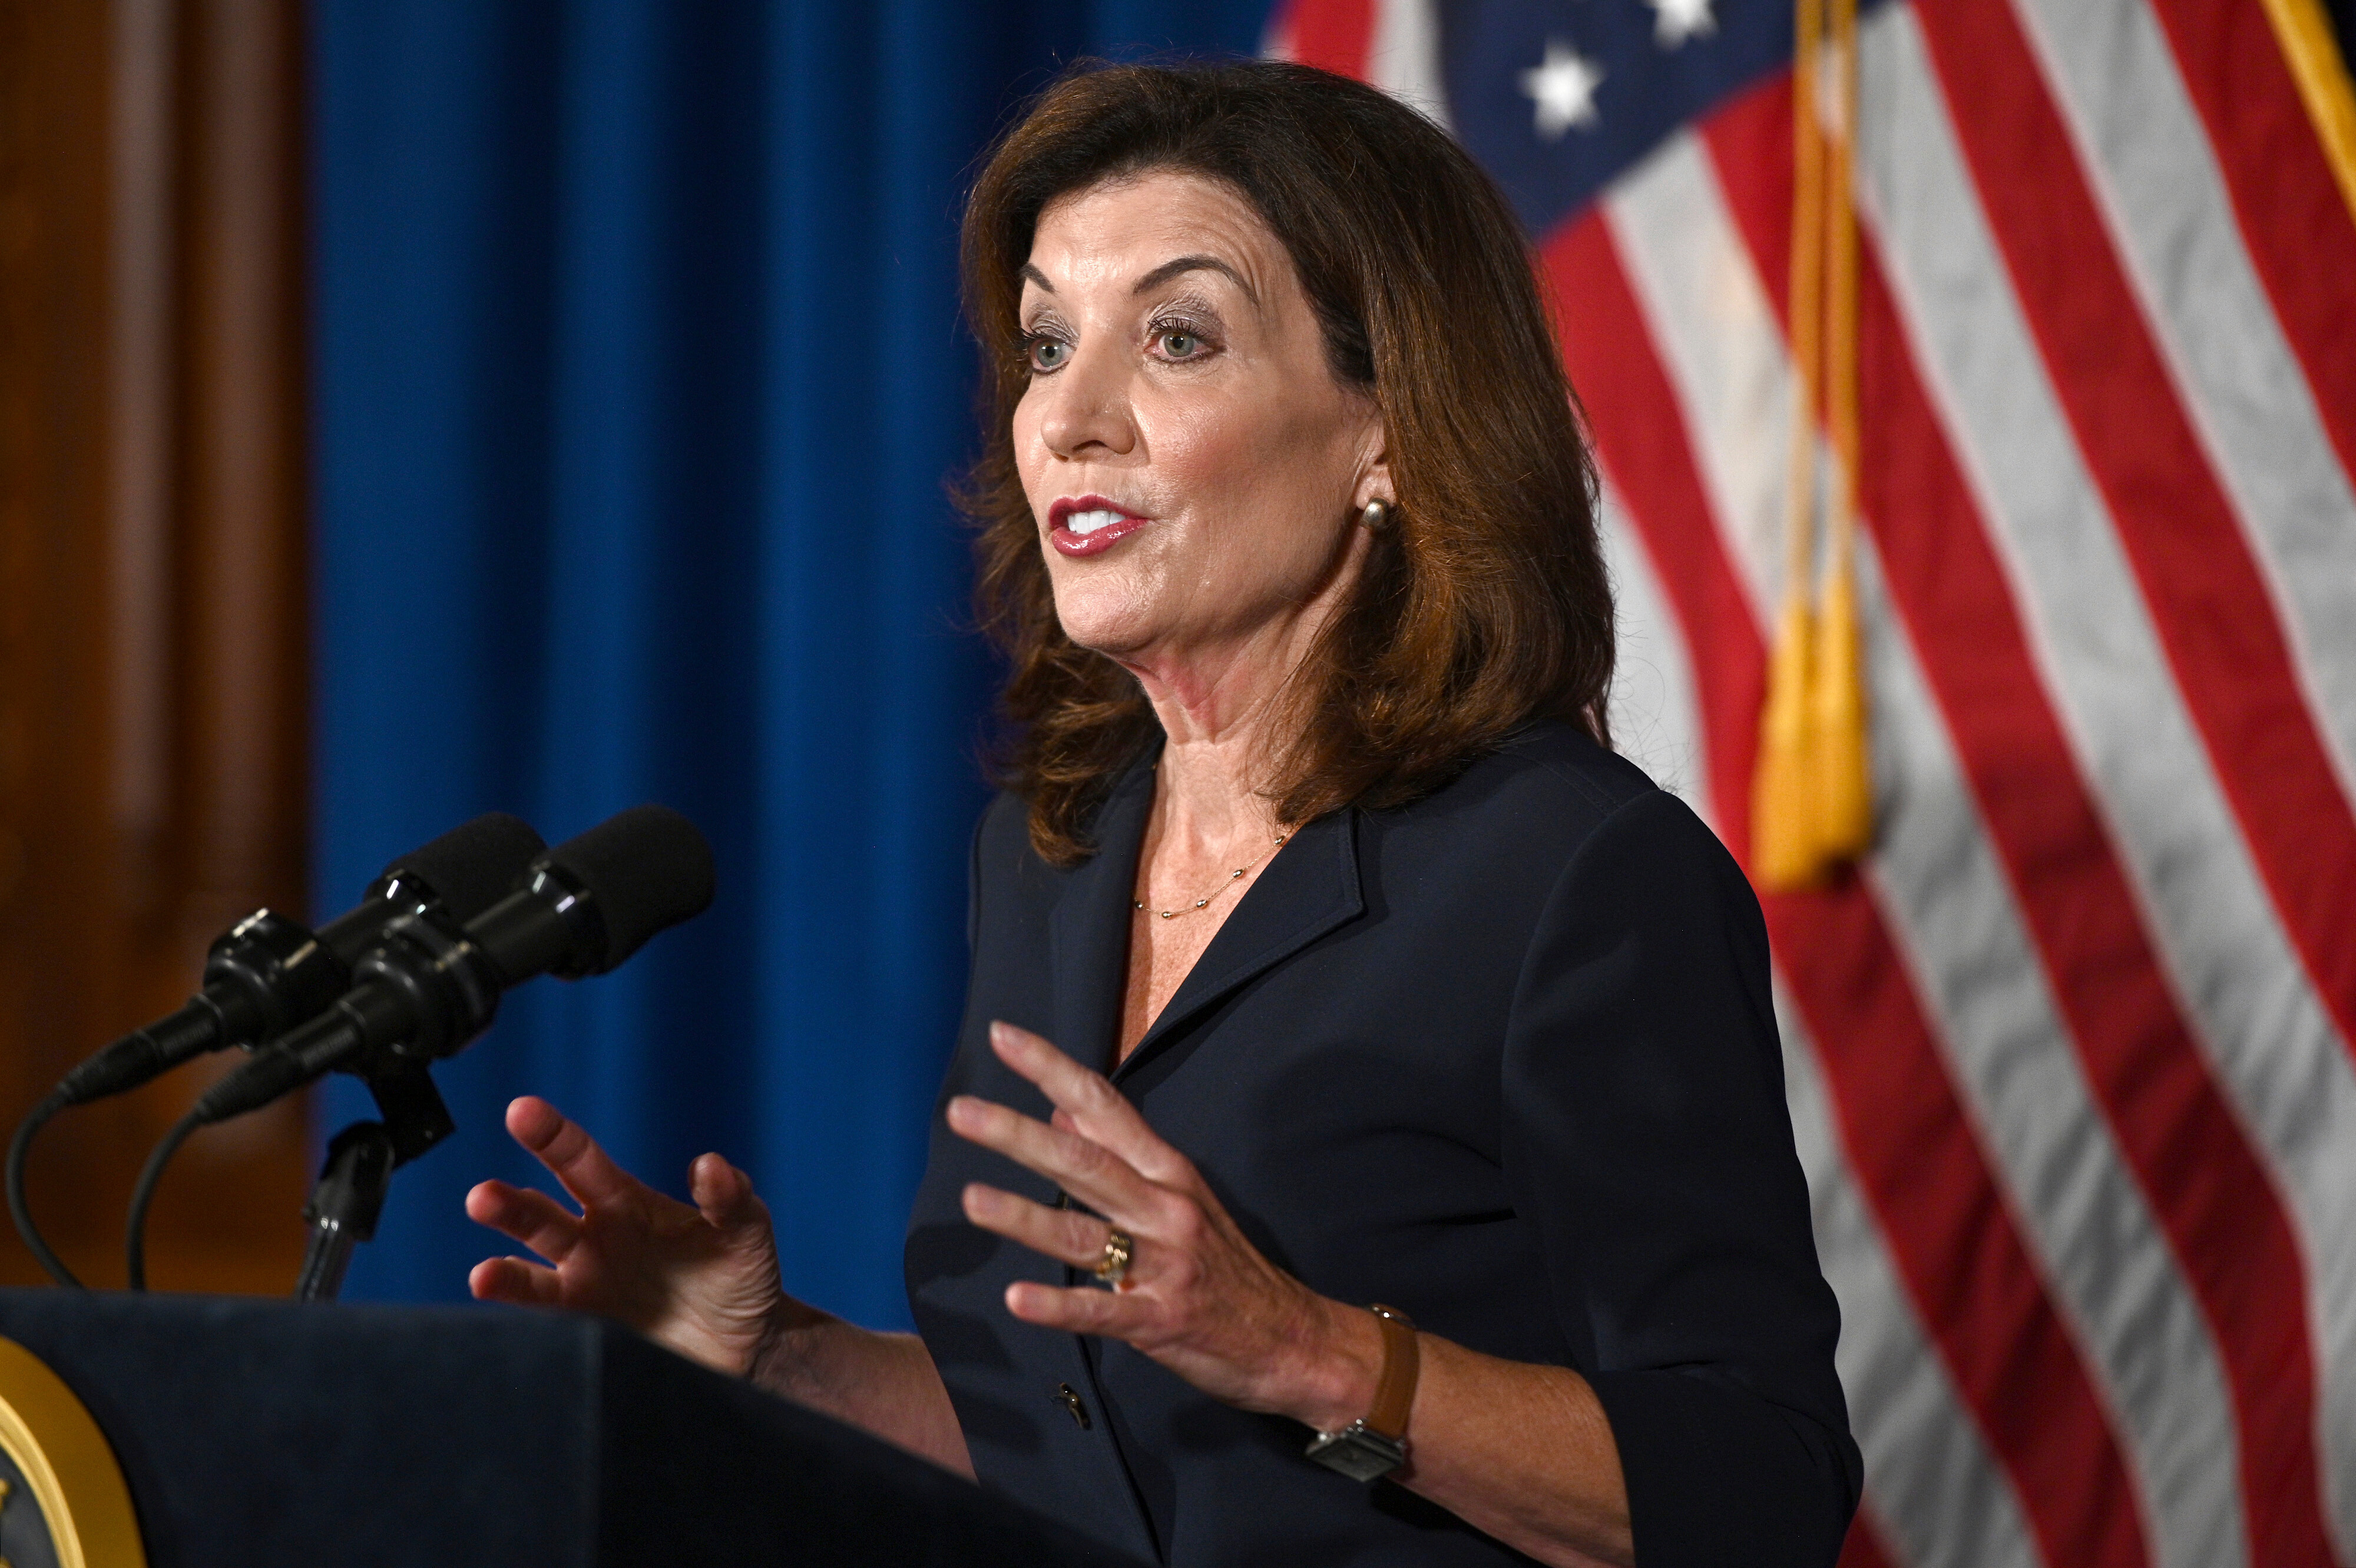 Cuomo successor Lt. Gov. Kathy Hochul distances herself in first comments since his resignation